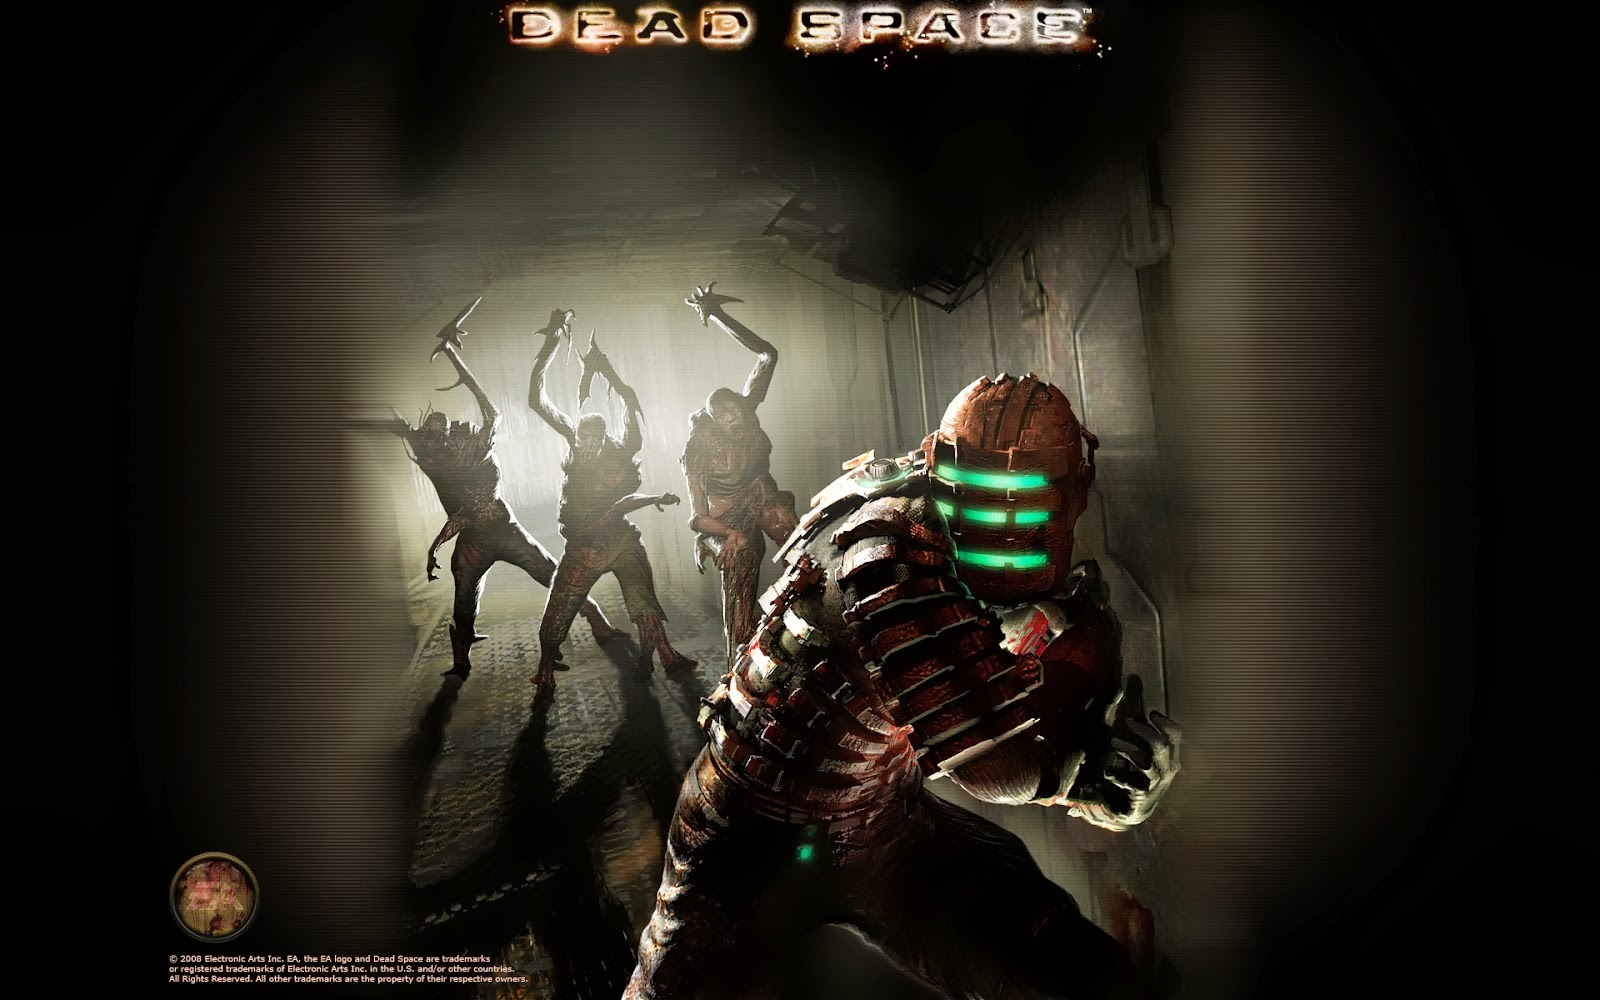 Dead Space HD Wallpaper | Space Wallpaper